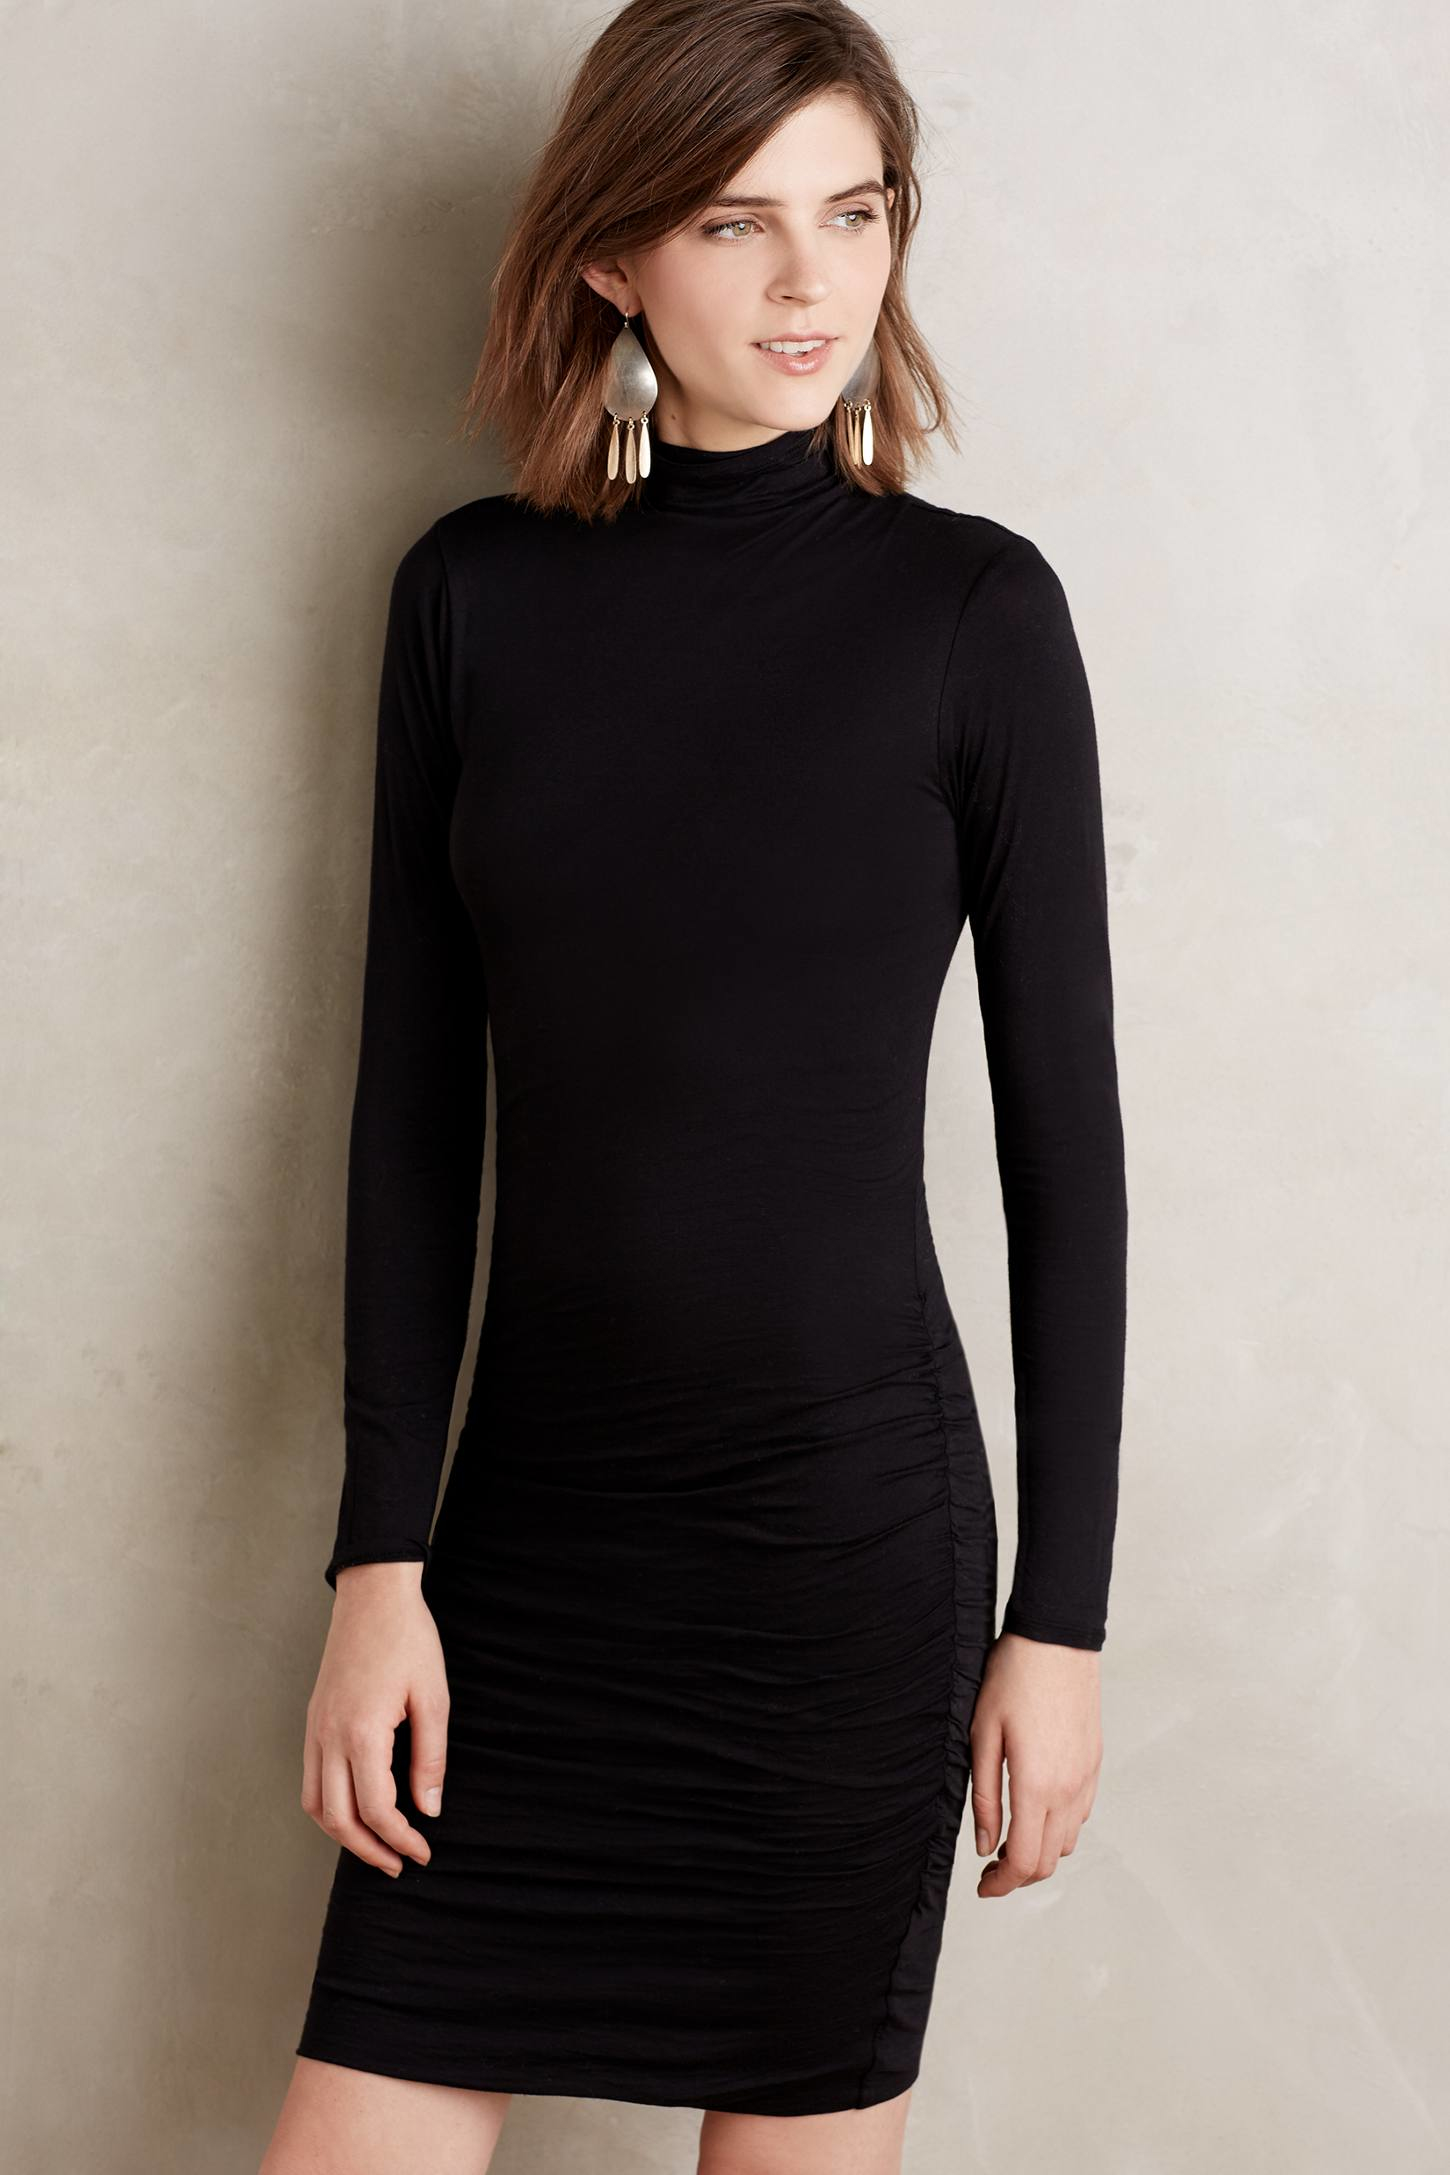 Buy products related to velvet turtleneck products and see what customers say about velvet turtleneck products on optimizings.cf FREE DELIVERY possible on eligible purchases. Generic Women Fashion Turtleneck With Velvet Warm Plus Size Shirt Black XL by Generic Currently unavailable.